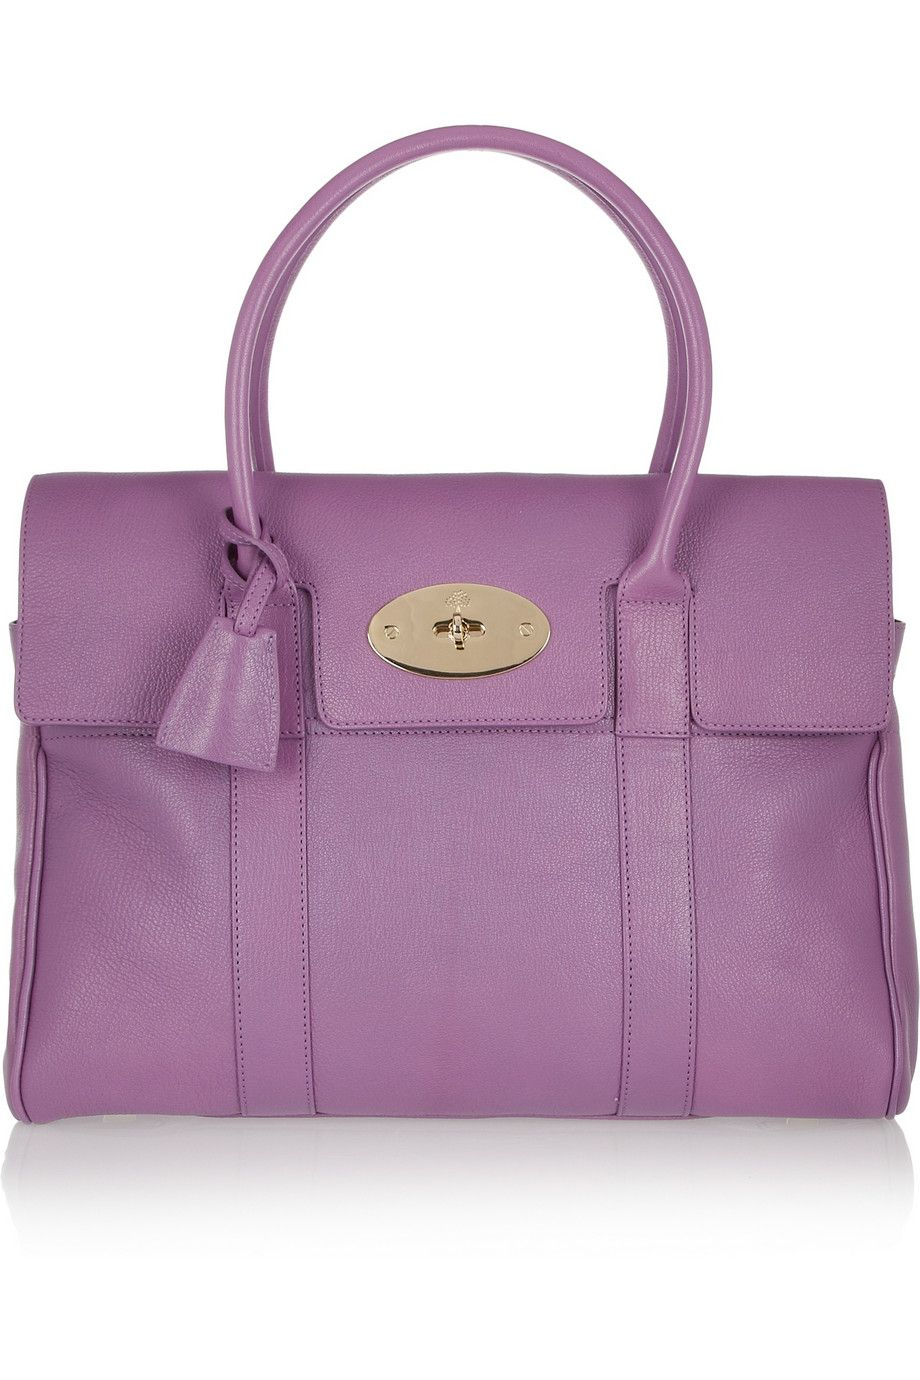 Mulberry - The Bayswater glossed-leather bag